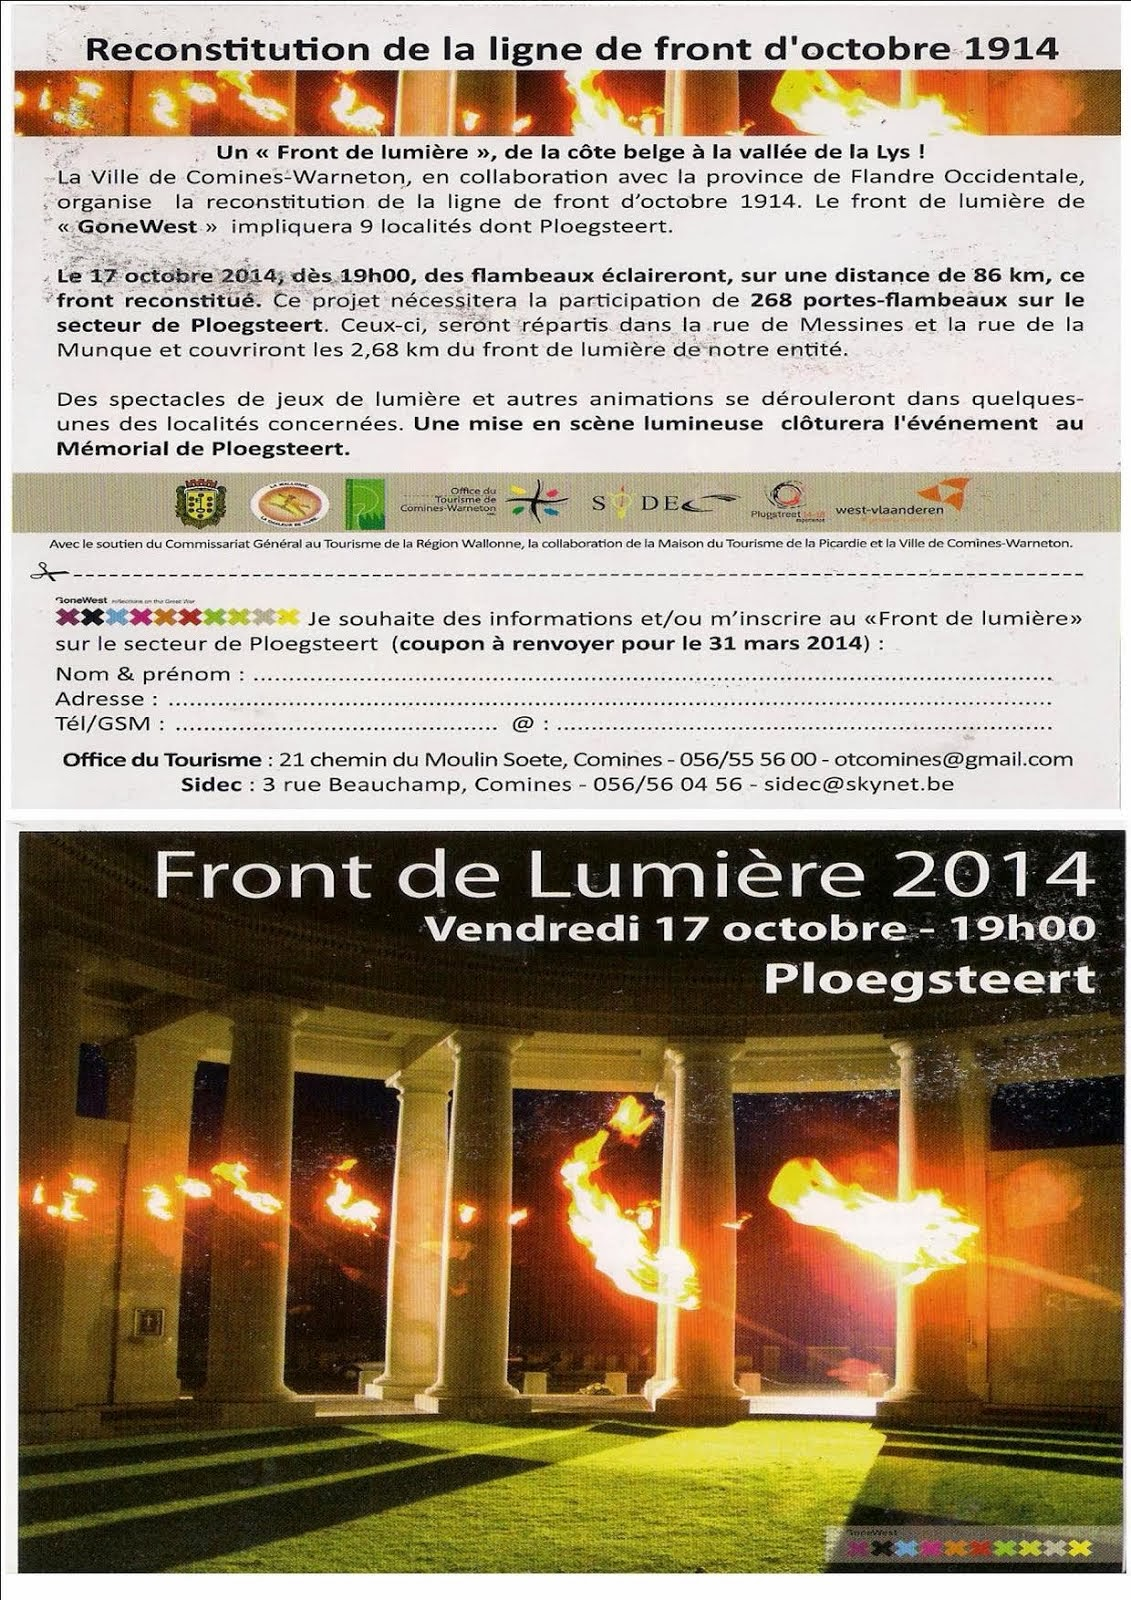 17 OCTOBRE RECONSTITUTION 14-18